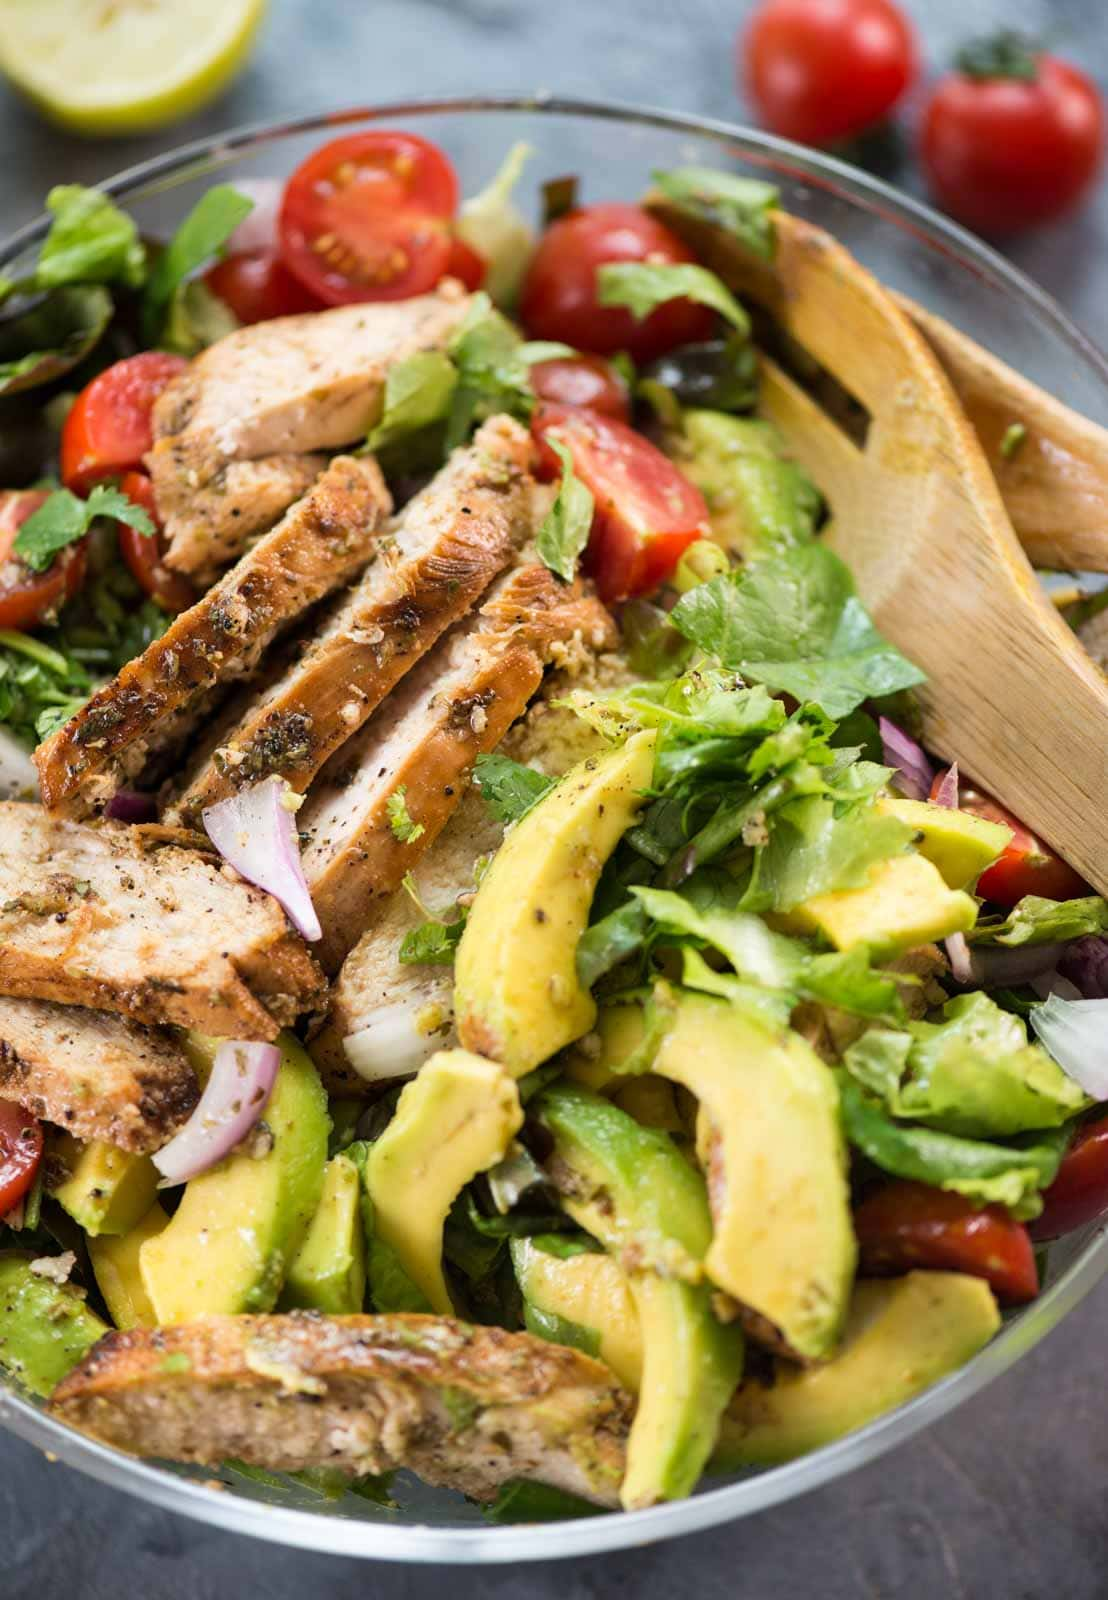 Healthy and filling Grilled Chicken salad with avocado.